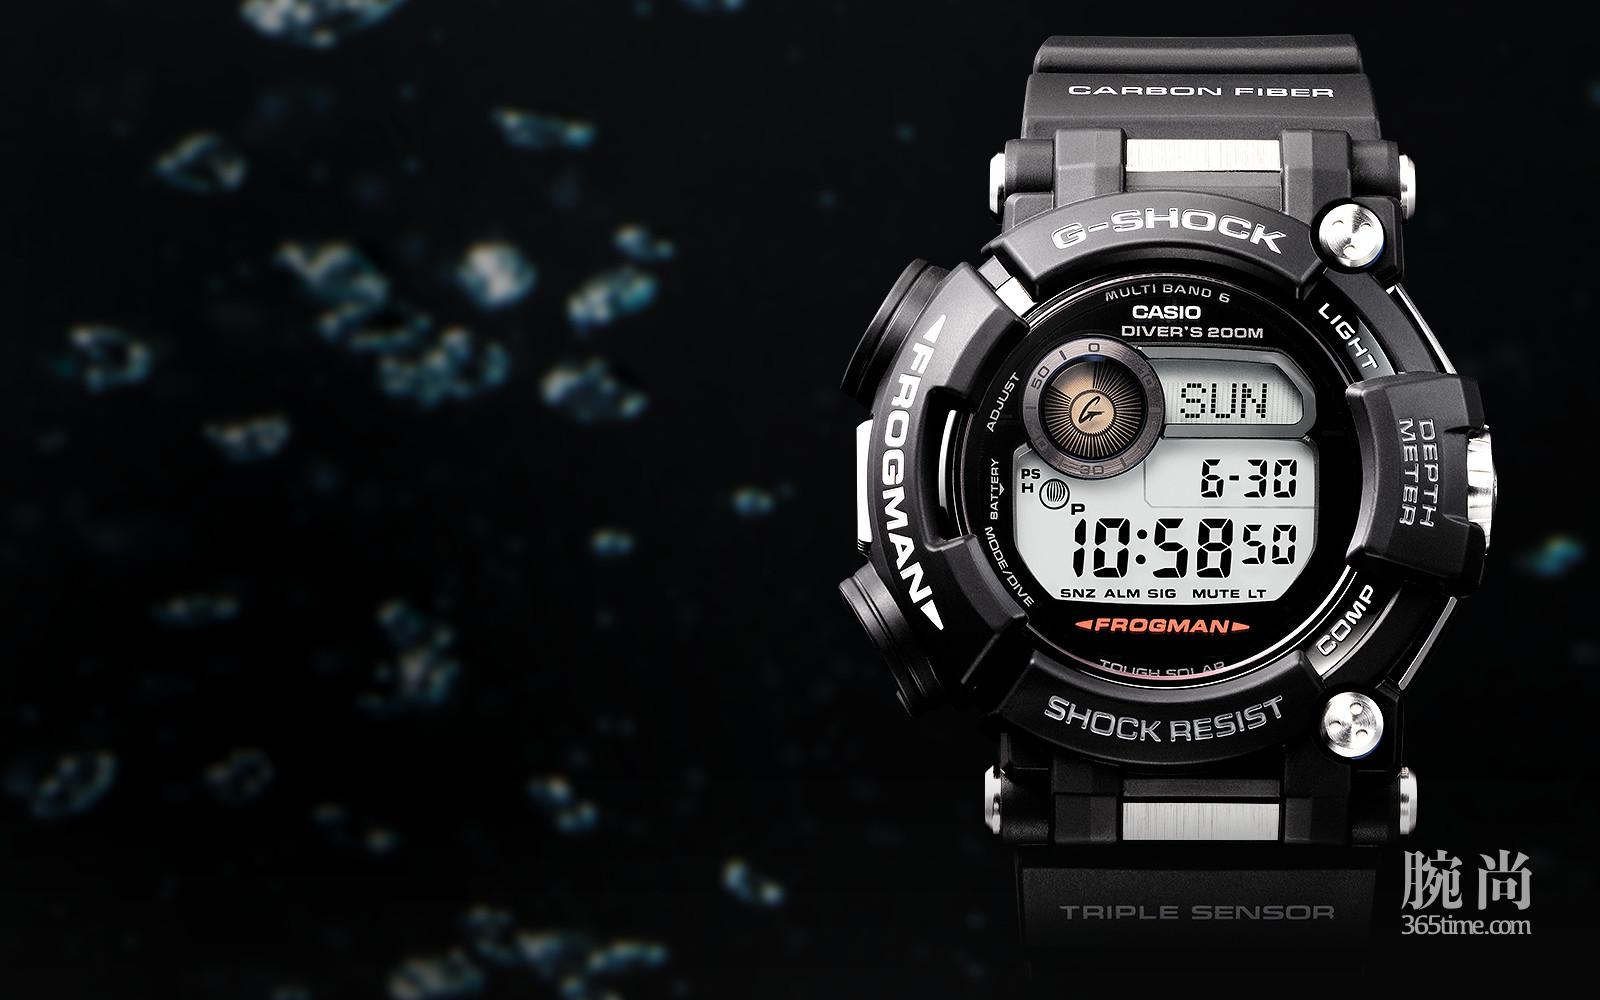 G-Shock-Frogman-GWF-D1000-200M-WATER-RESISTANCE-FOR-DIVERS-2.jpg